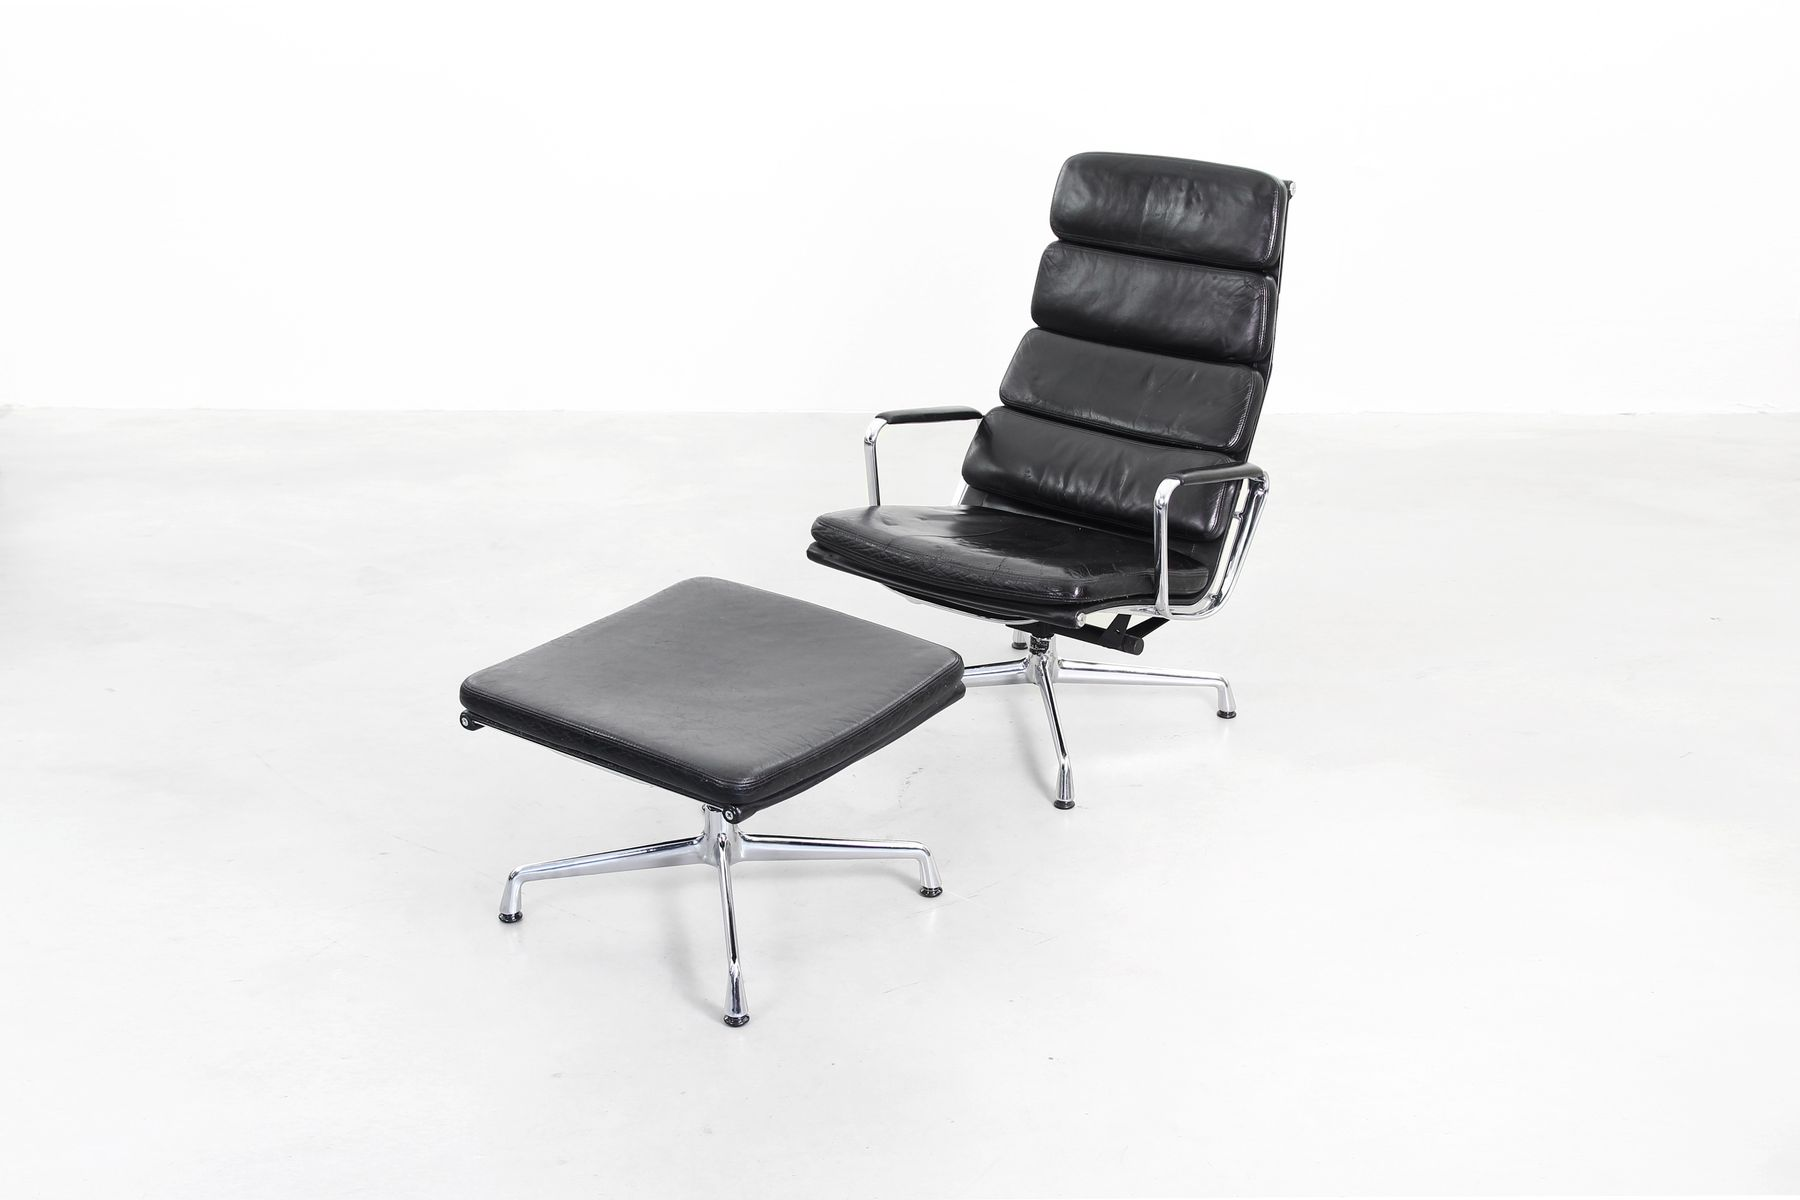 ea 222 lounge chair with ottoman by charles ray eames. Black Bedroom Furniture Sets. Home Design Ideas